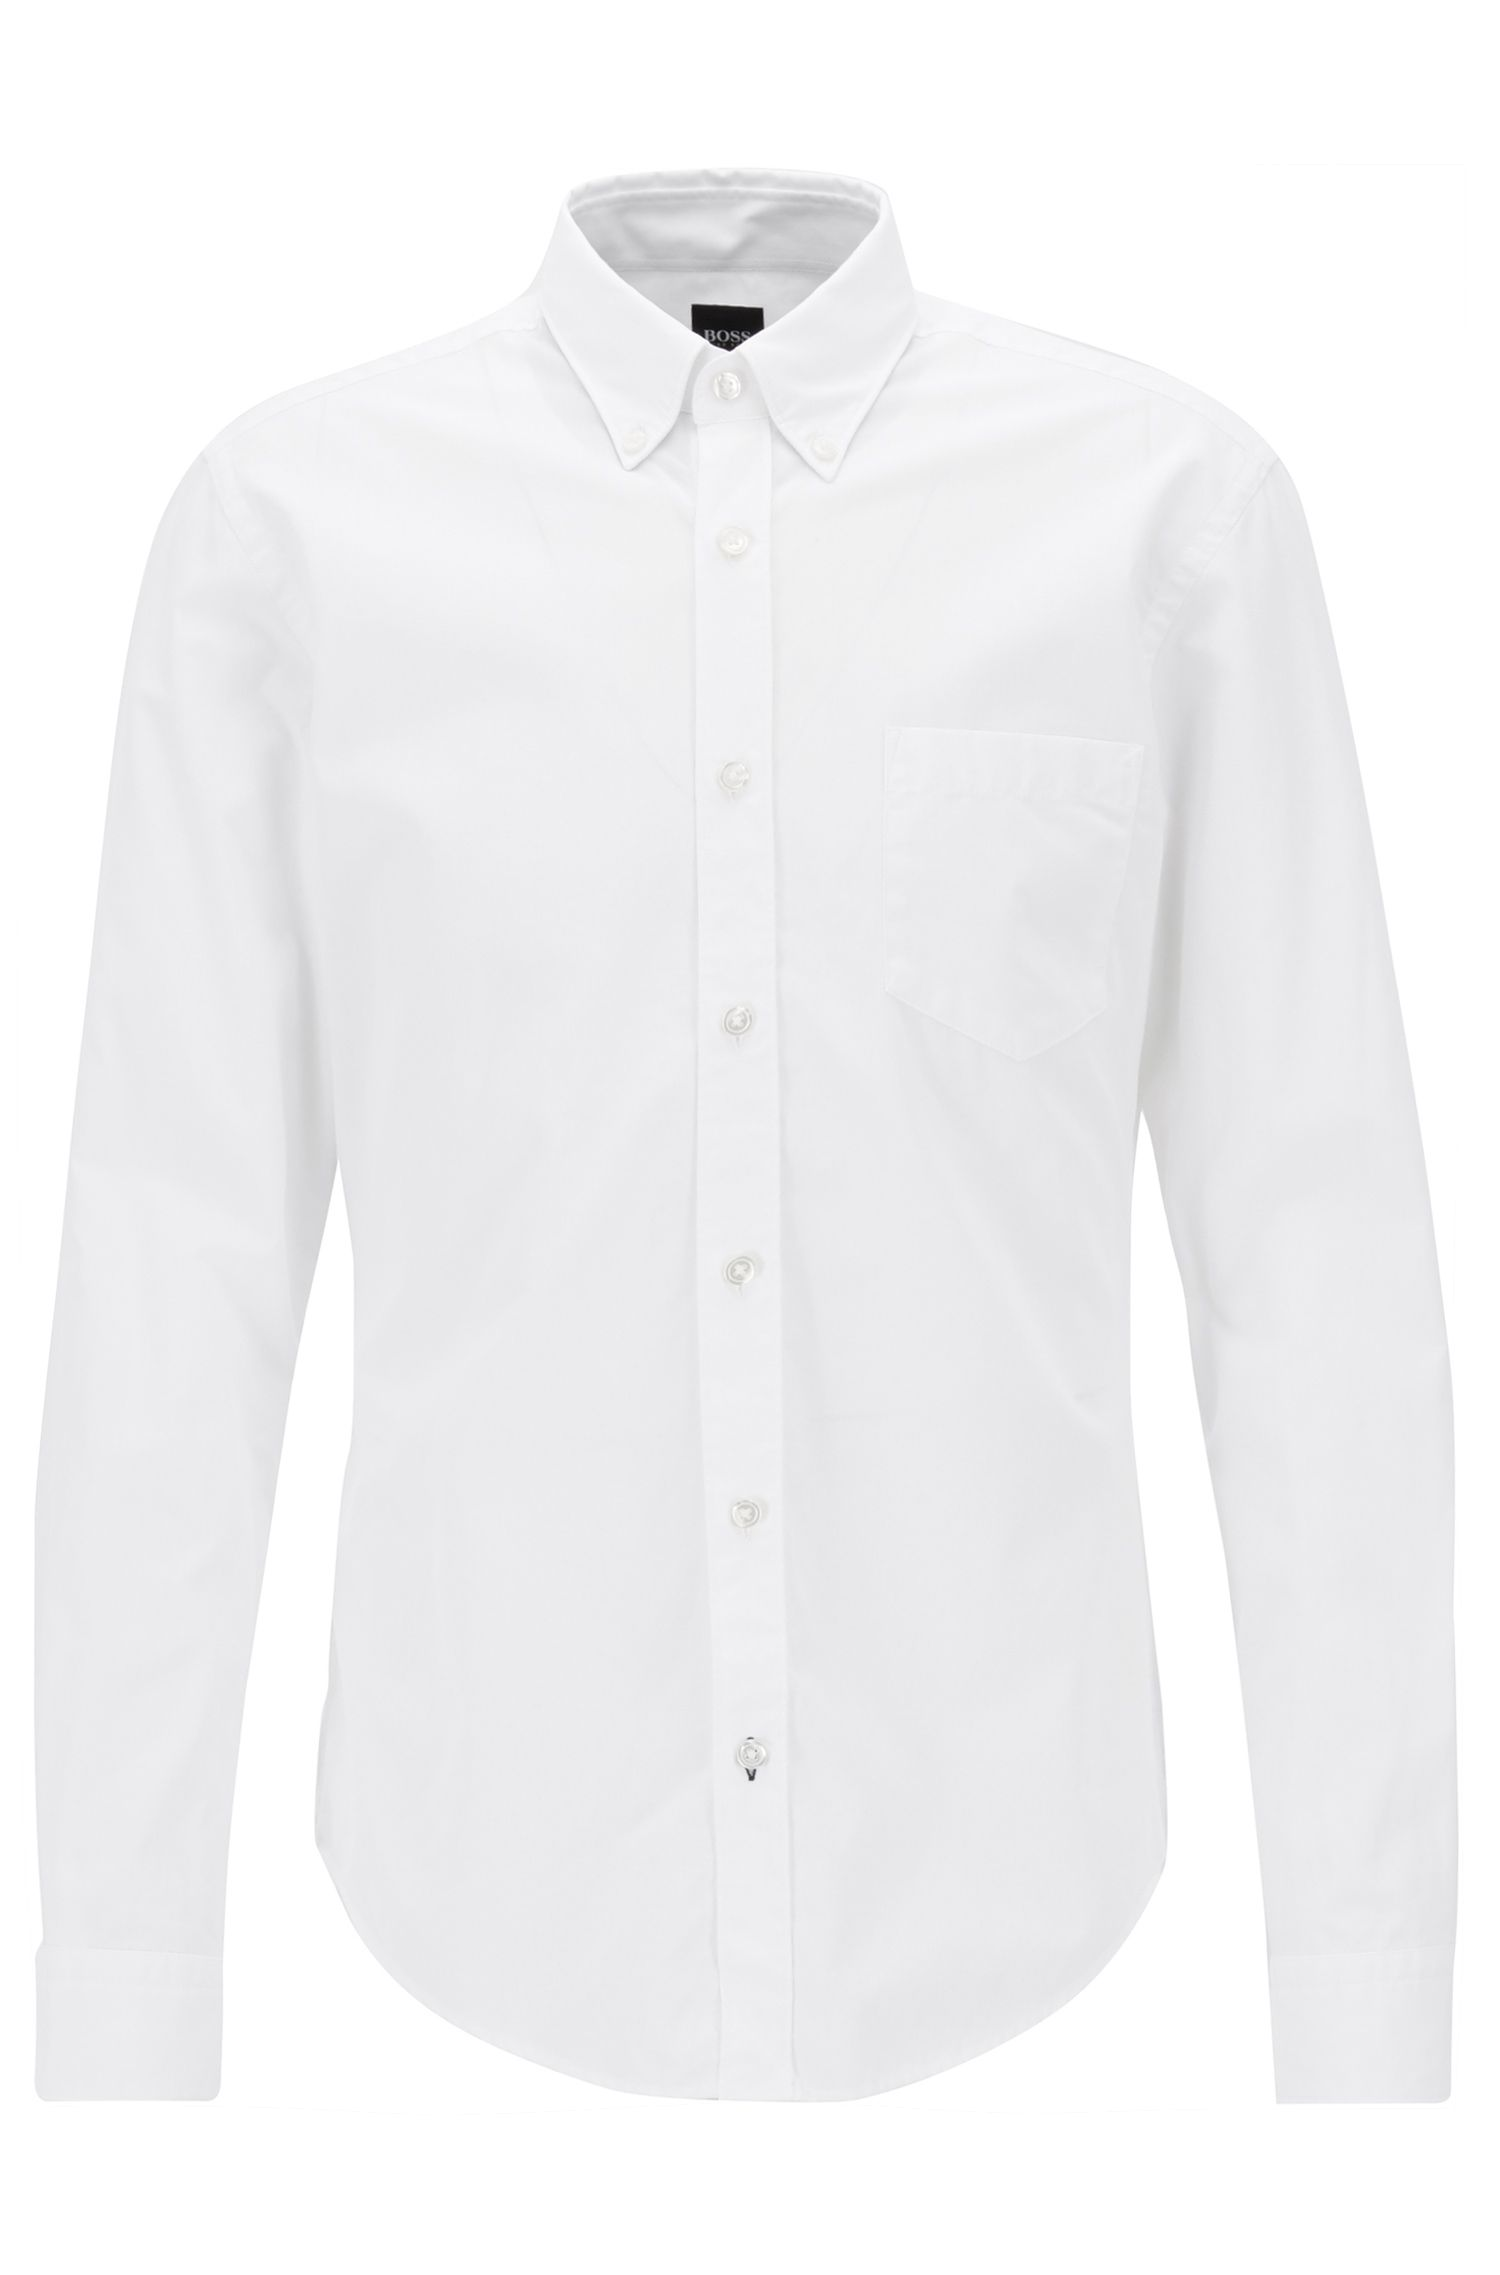 Cotton Jersey Garment Washed Sport Shirt, Slim Fit | Rod P